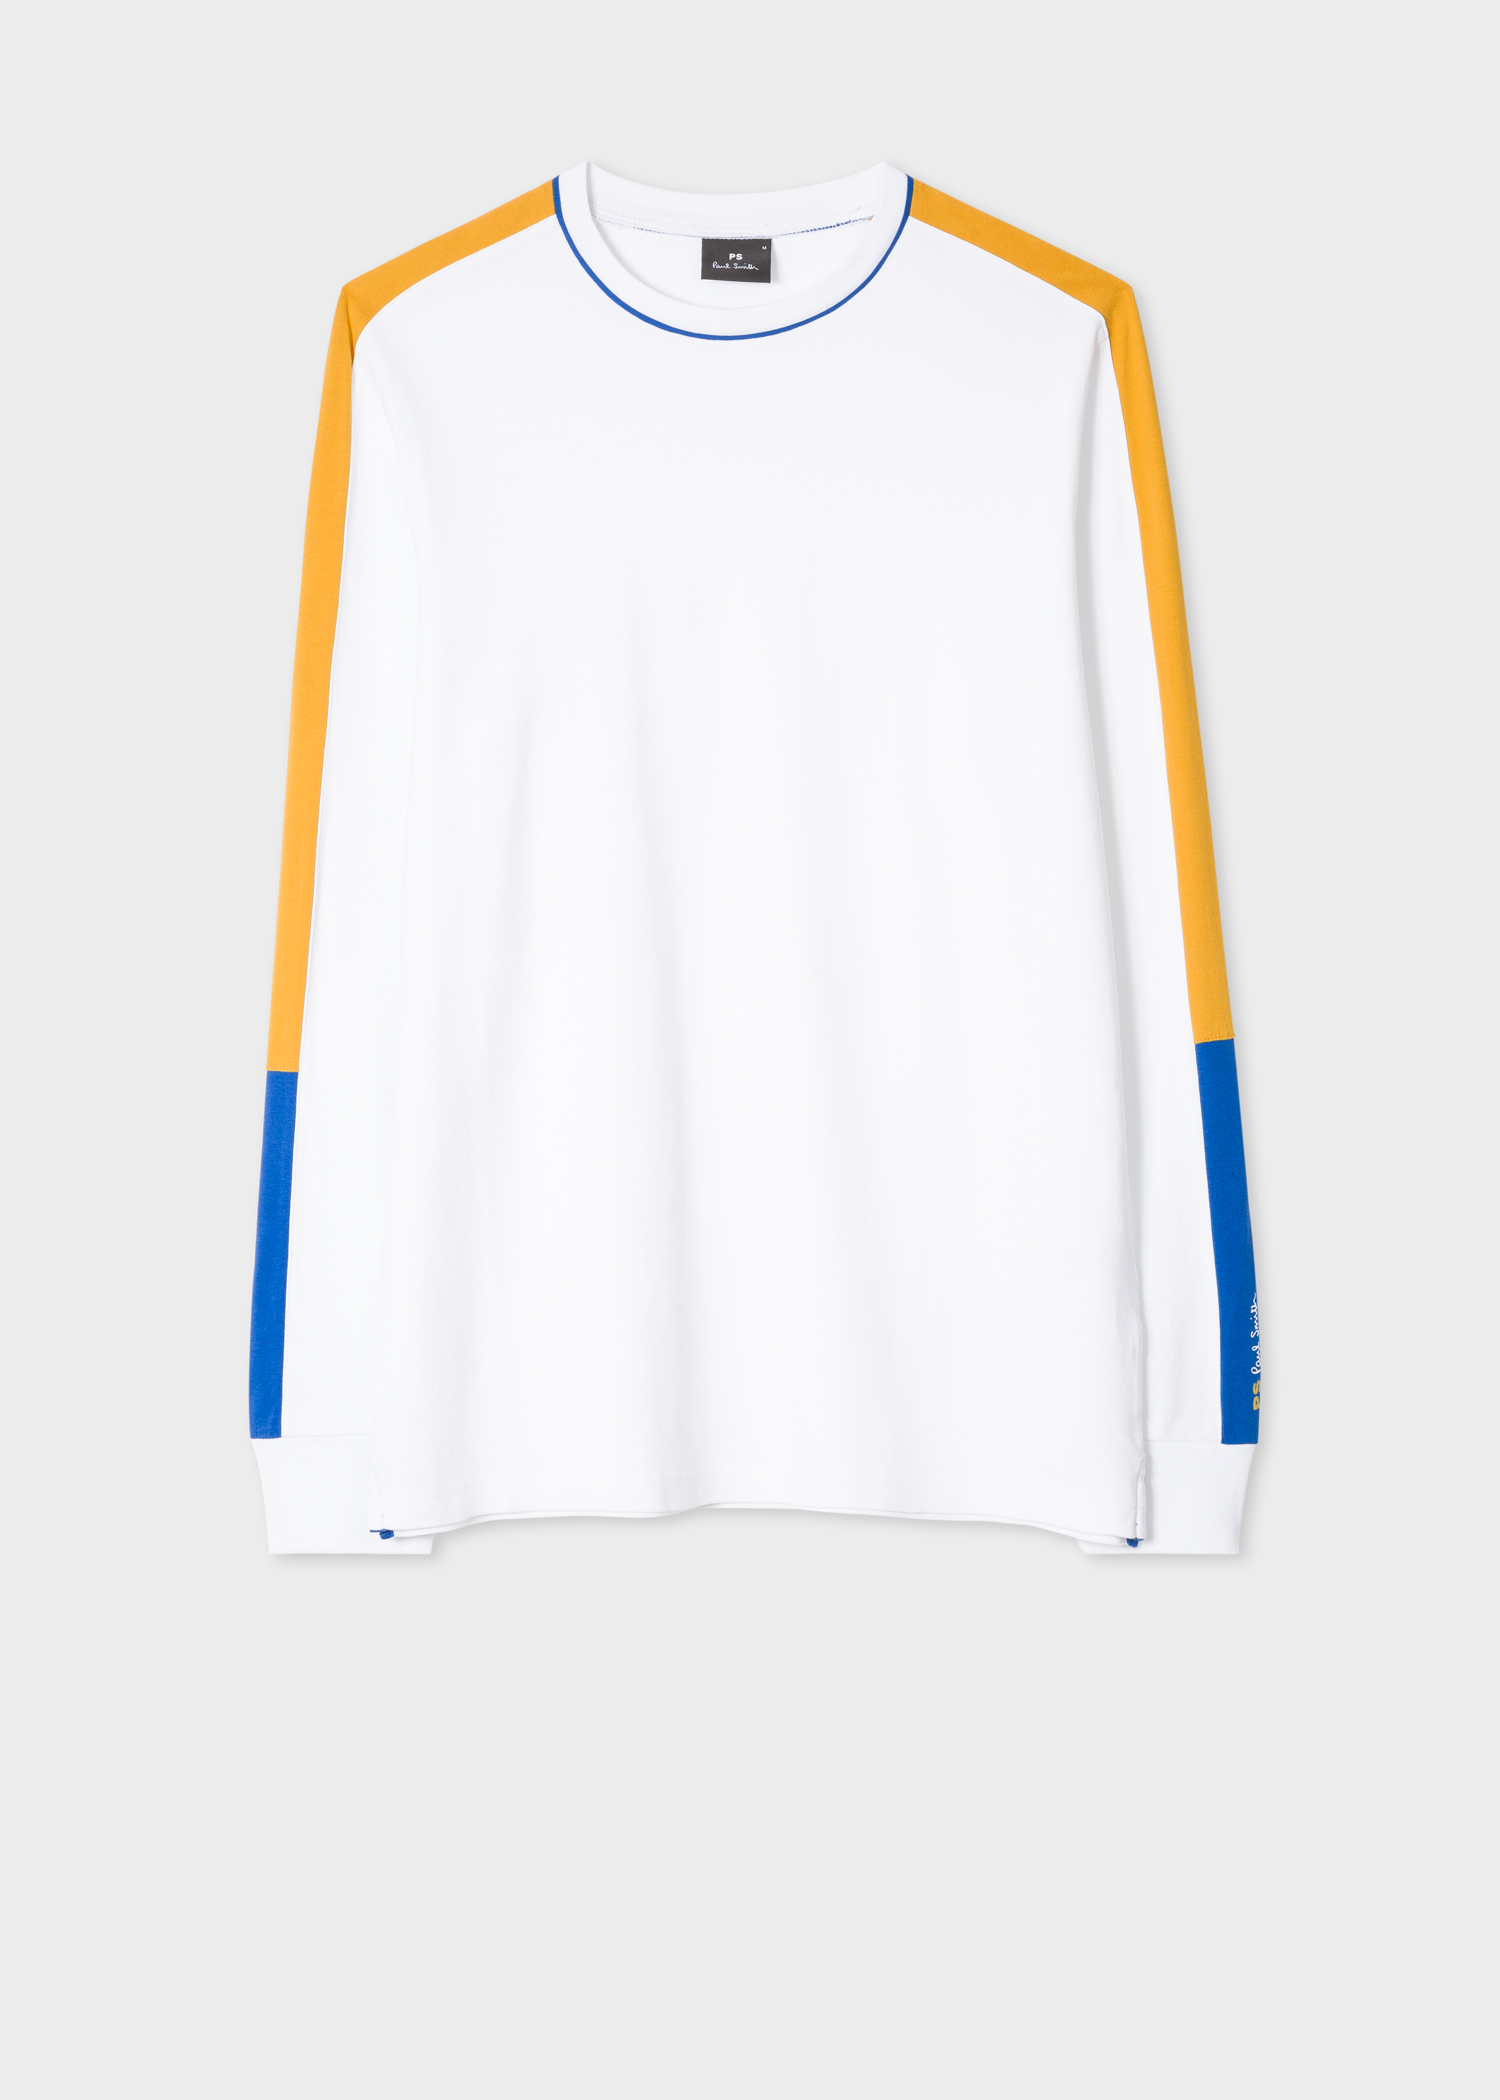 51f004284852 Front view - Men's White Long-Sleeve T-Shirt With Mustard And Blue Sleeve